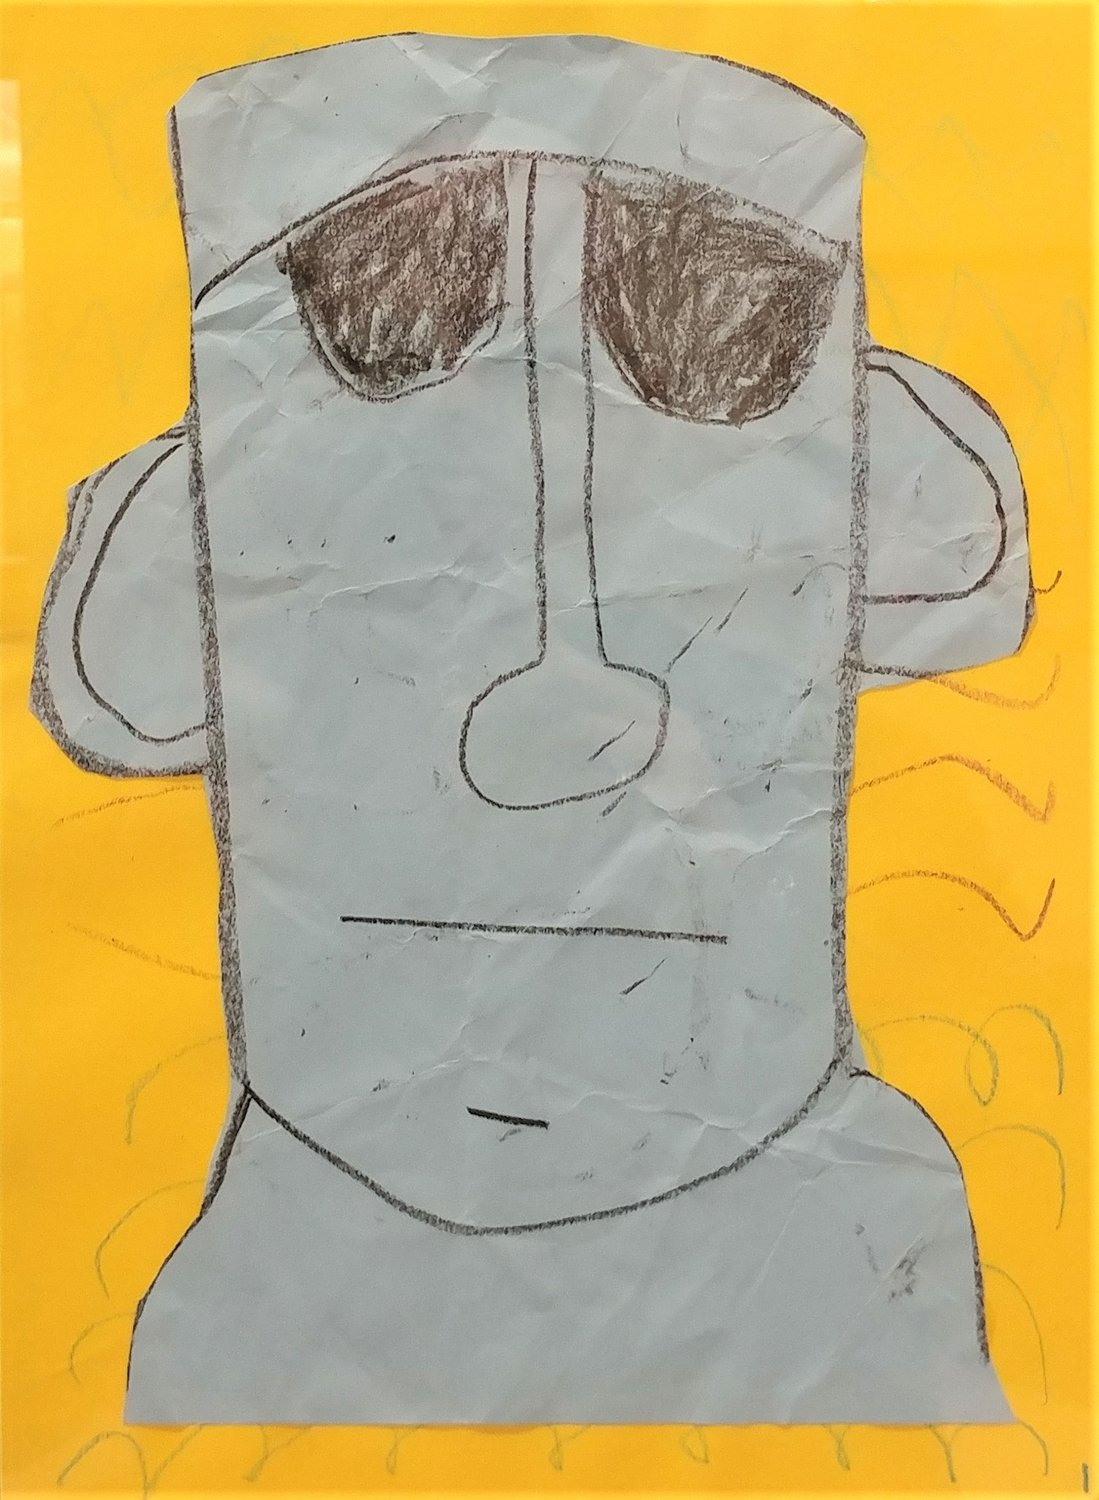 Easter Island Moai statute, by Ariana Ovale, first grader at Jornada Elementary School.